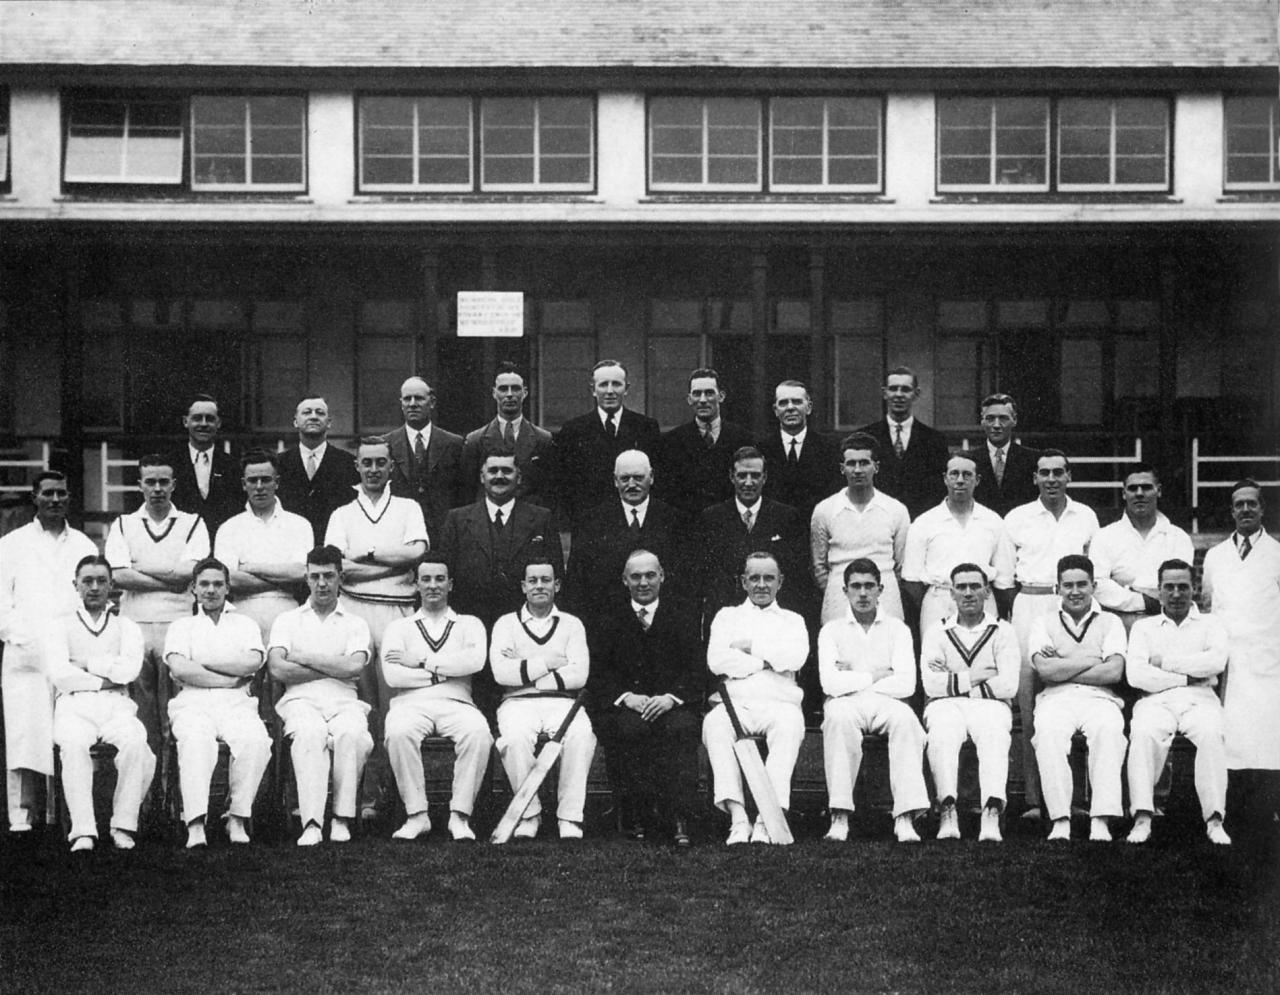 Mechanics Institute, Waggon Shop Cricket Club